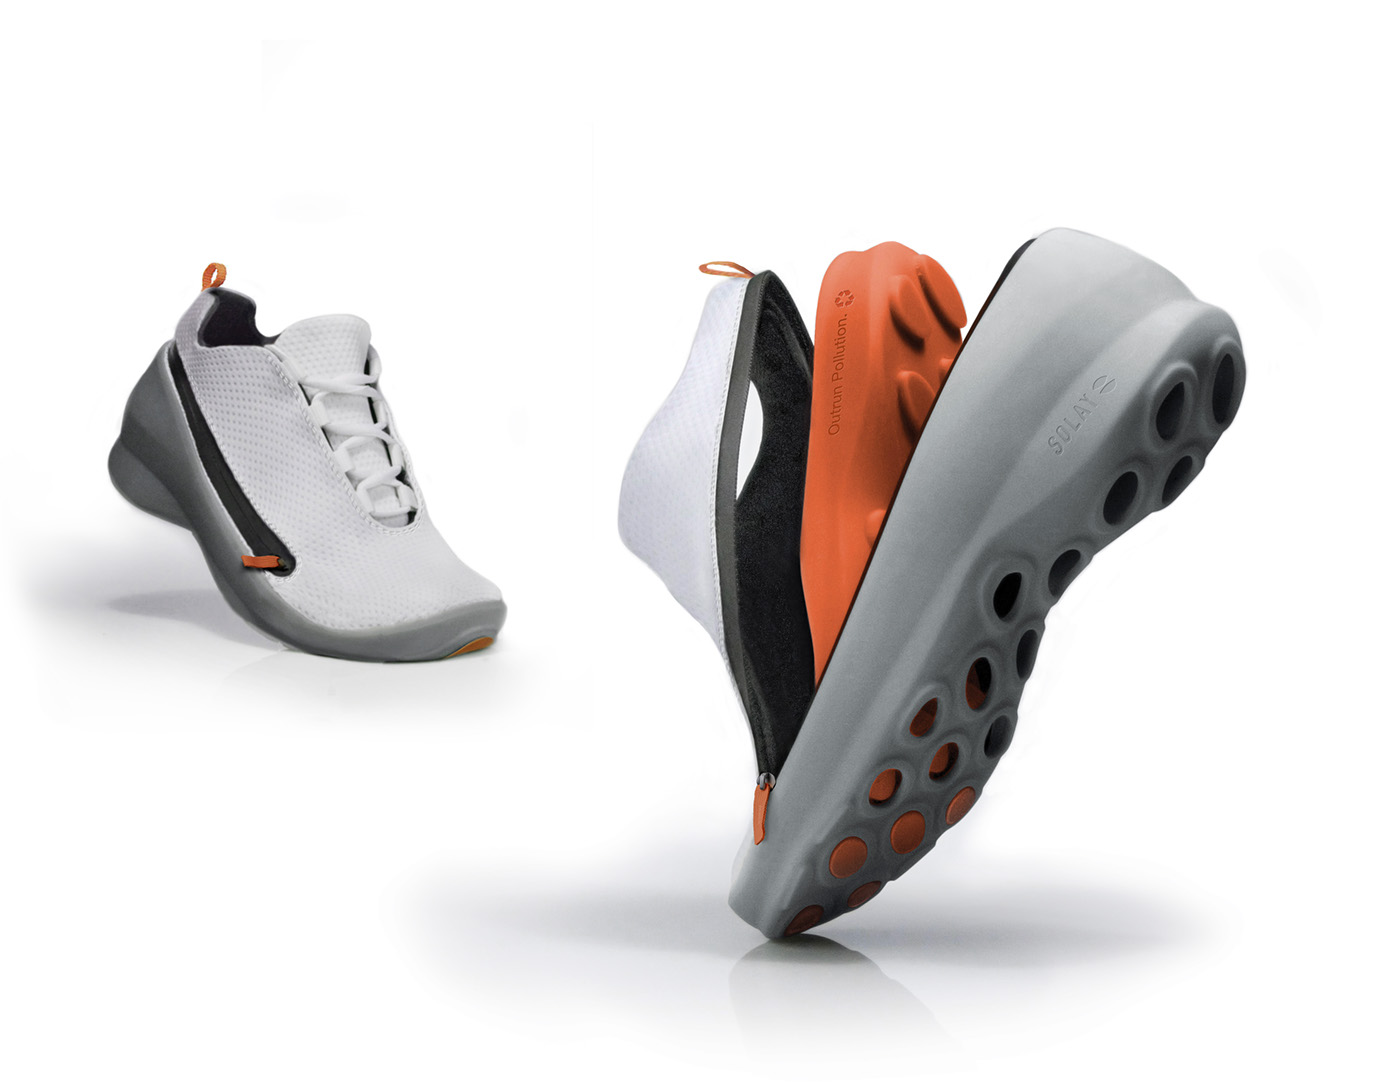 Concept - Sustainable Running Shoe on